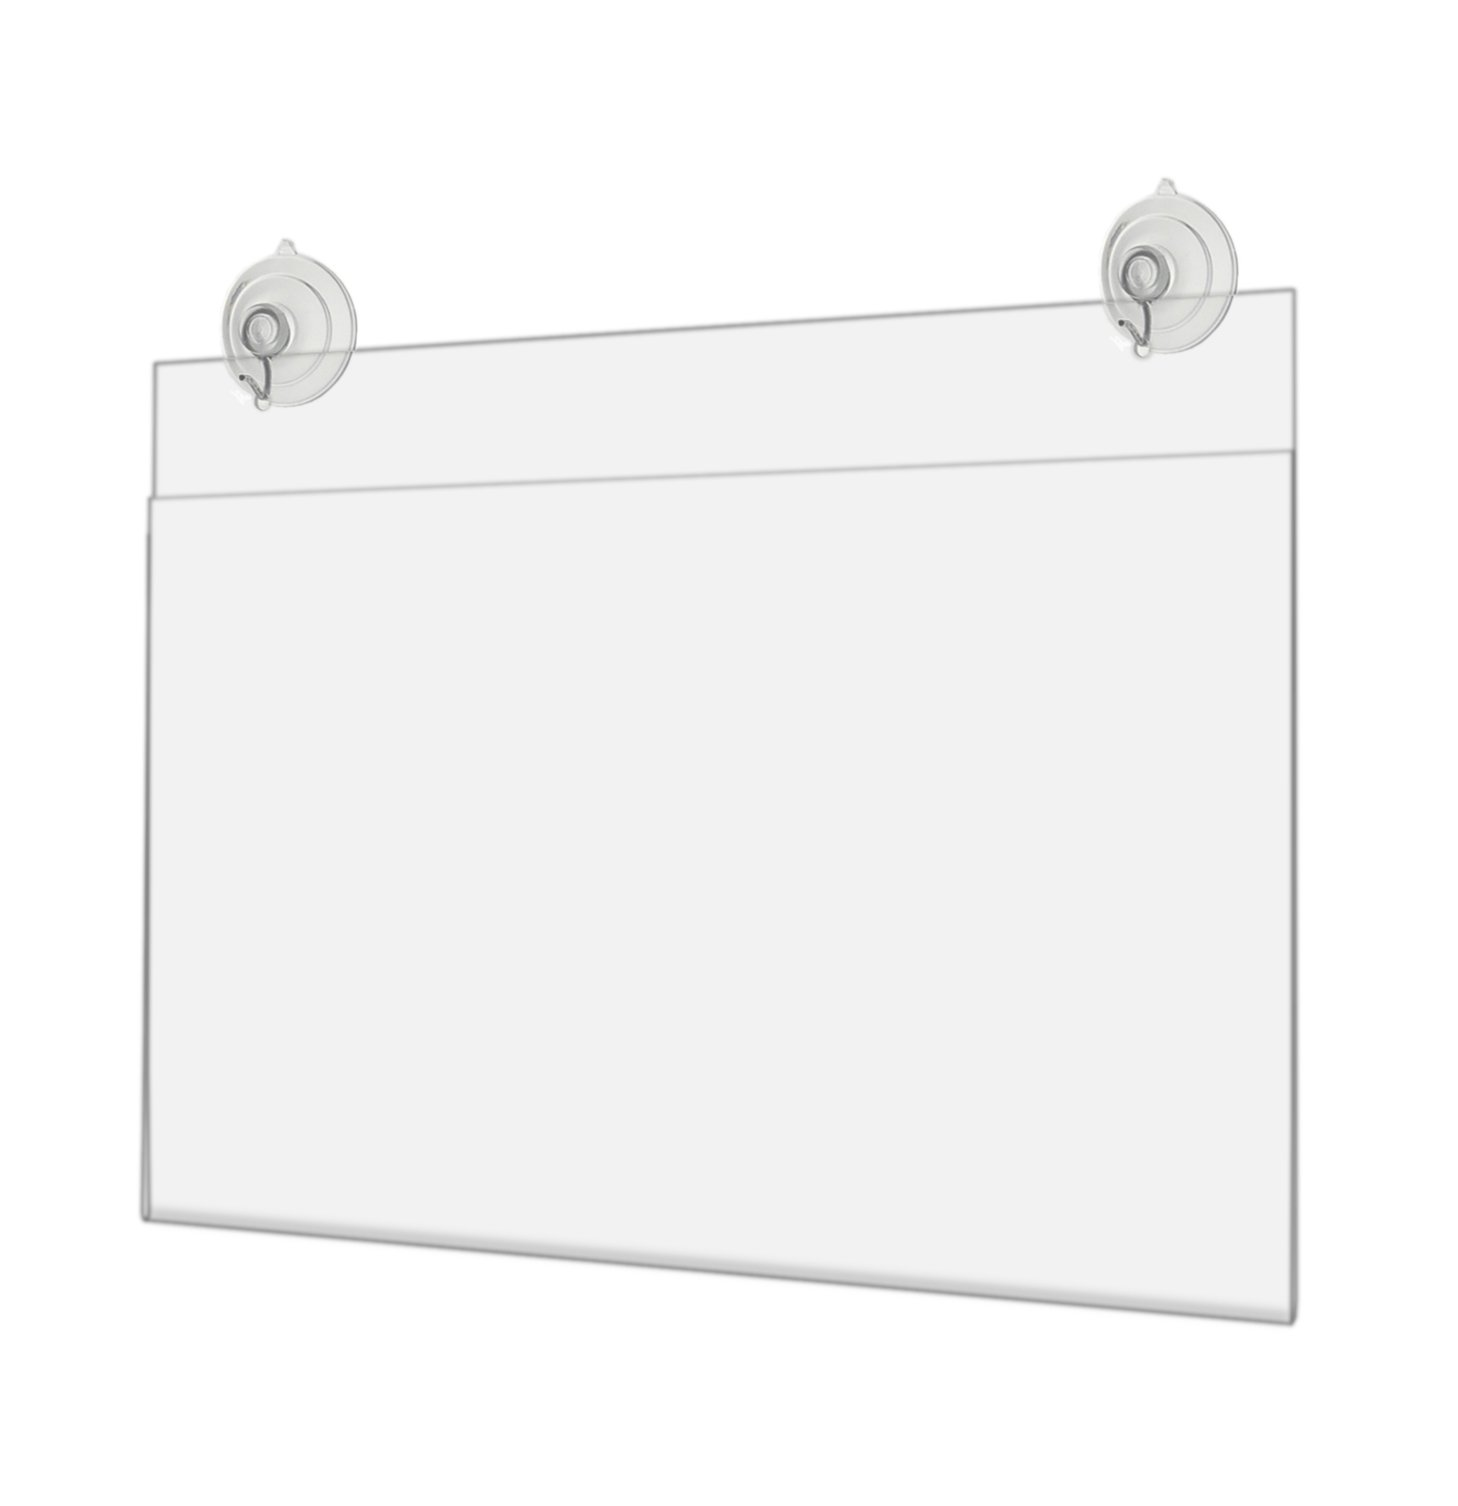 Marketing Holders Horizontal Store Front Sign Display Advertisement Flyer Frame with Suction Cups and Hanging Hooks 14''w x 8.5''h Lot of 4